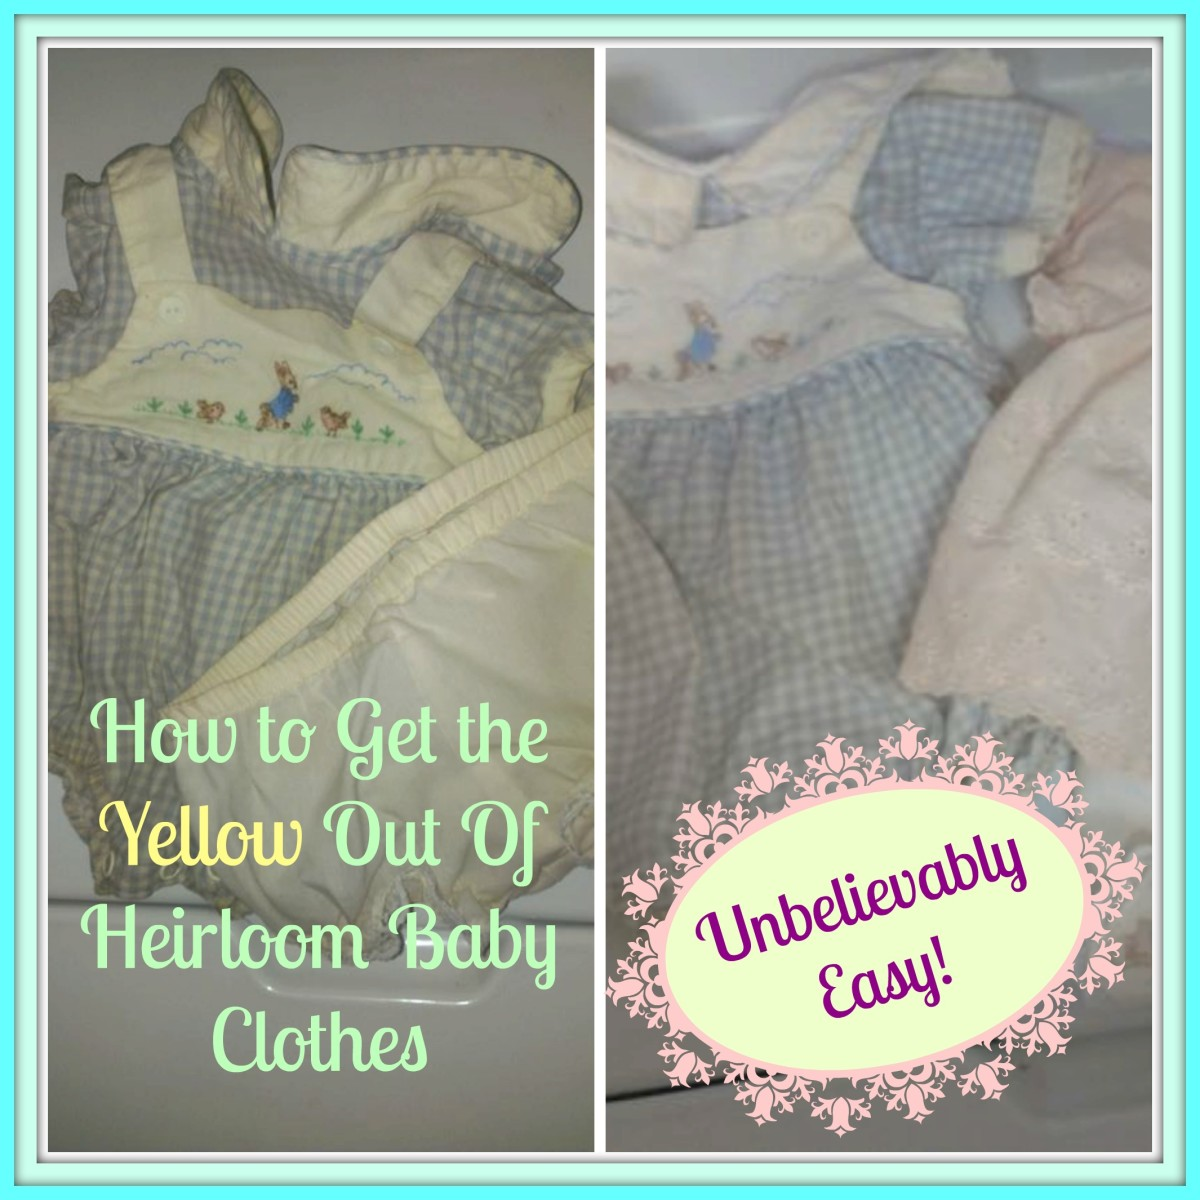 How to Take the Yellow Stains Out of Heirloom Baby Clothes